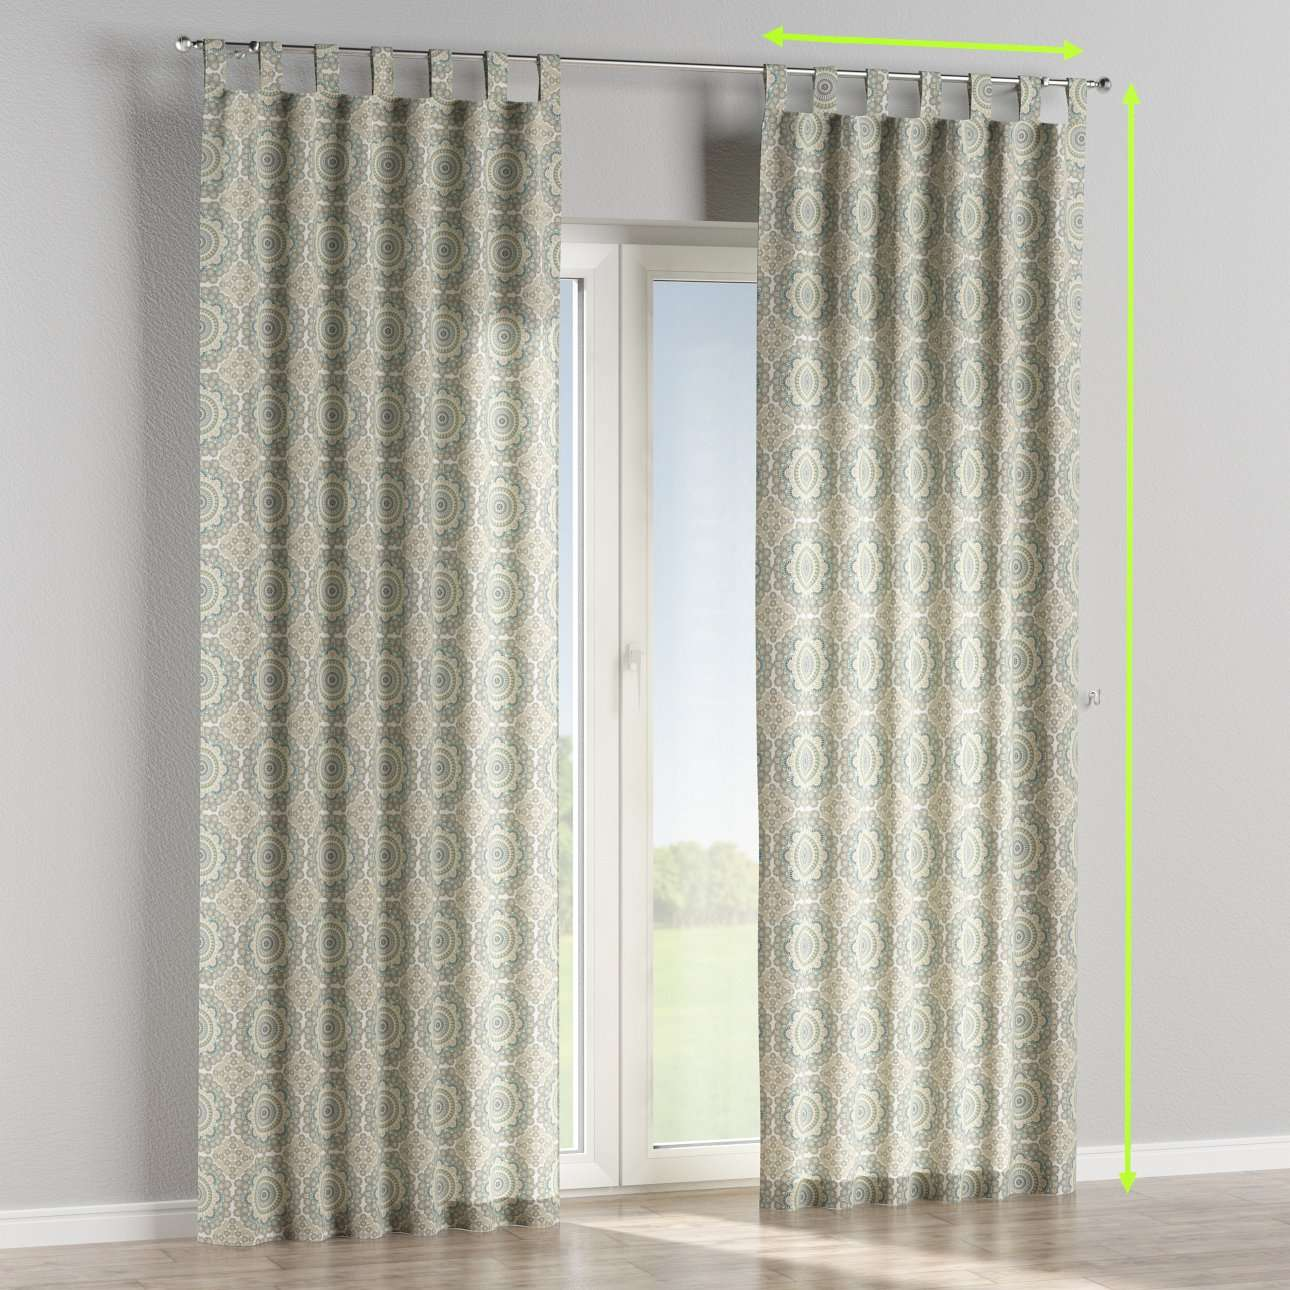 Tab top curtains in collection Comics/Geometrical, fabric: 137-84